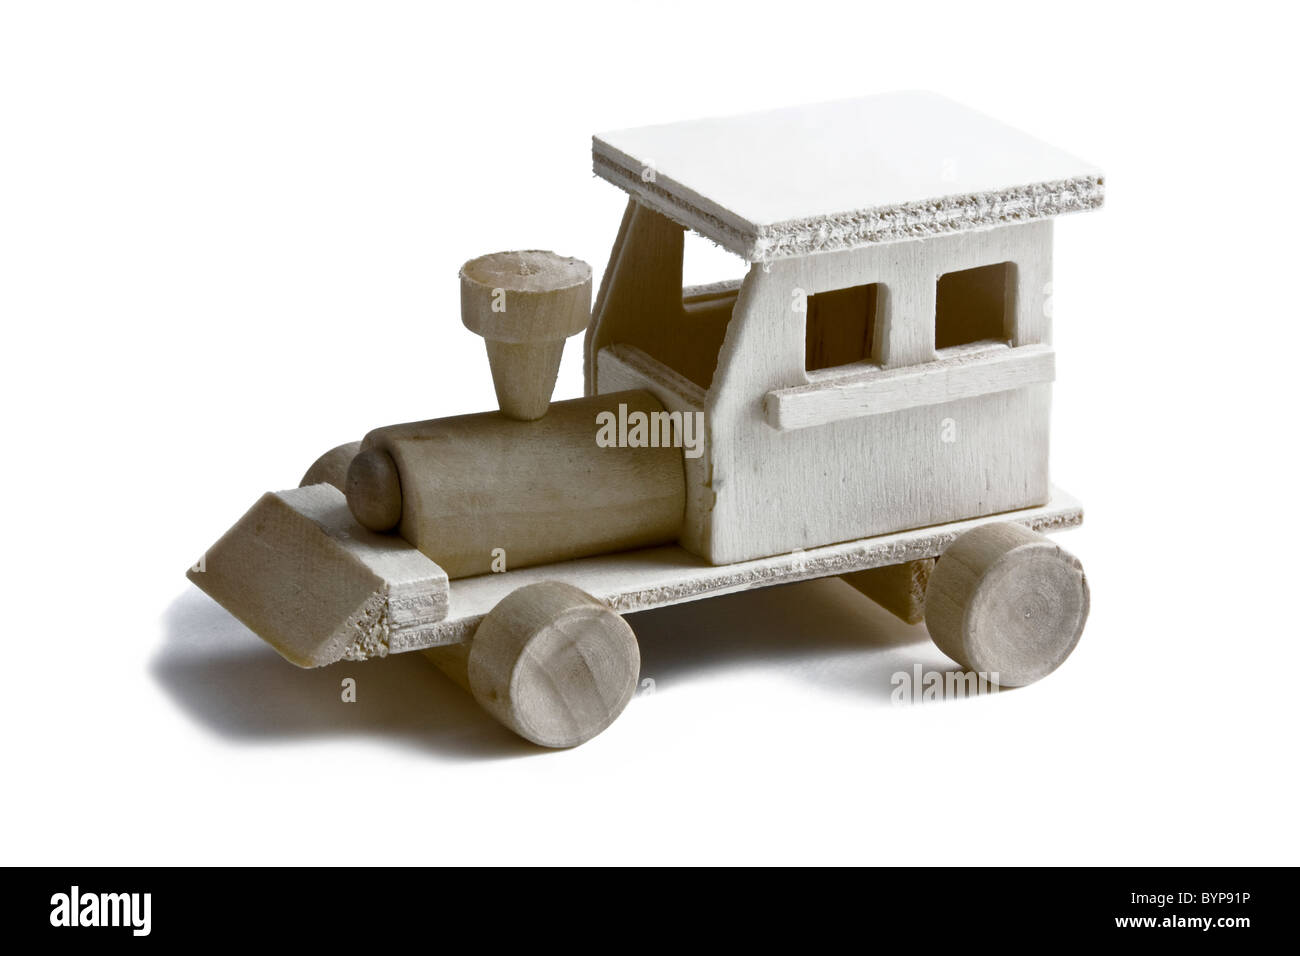 Wooden toy train with wheels on white background - Stock Image